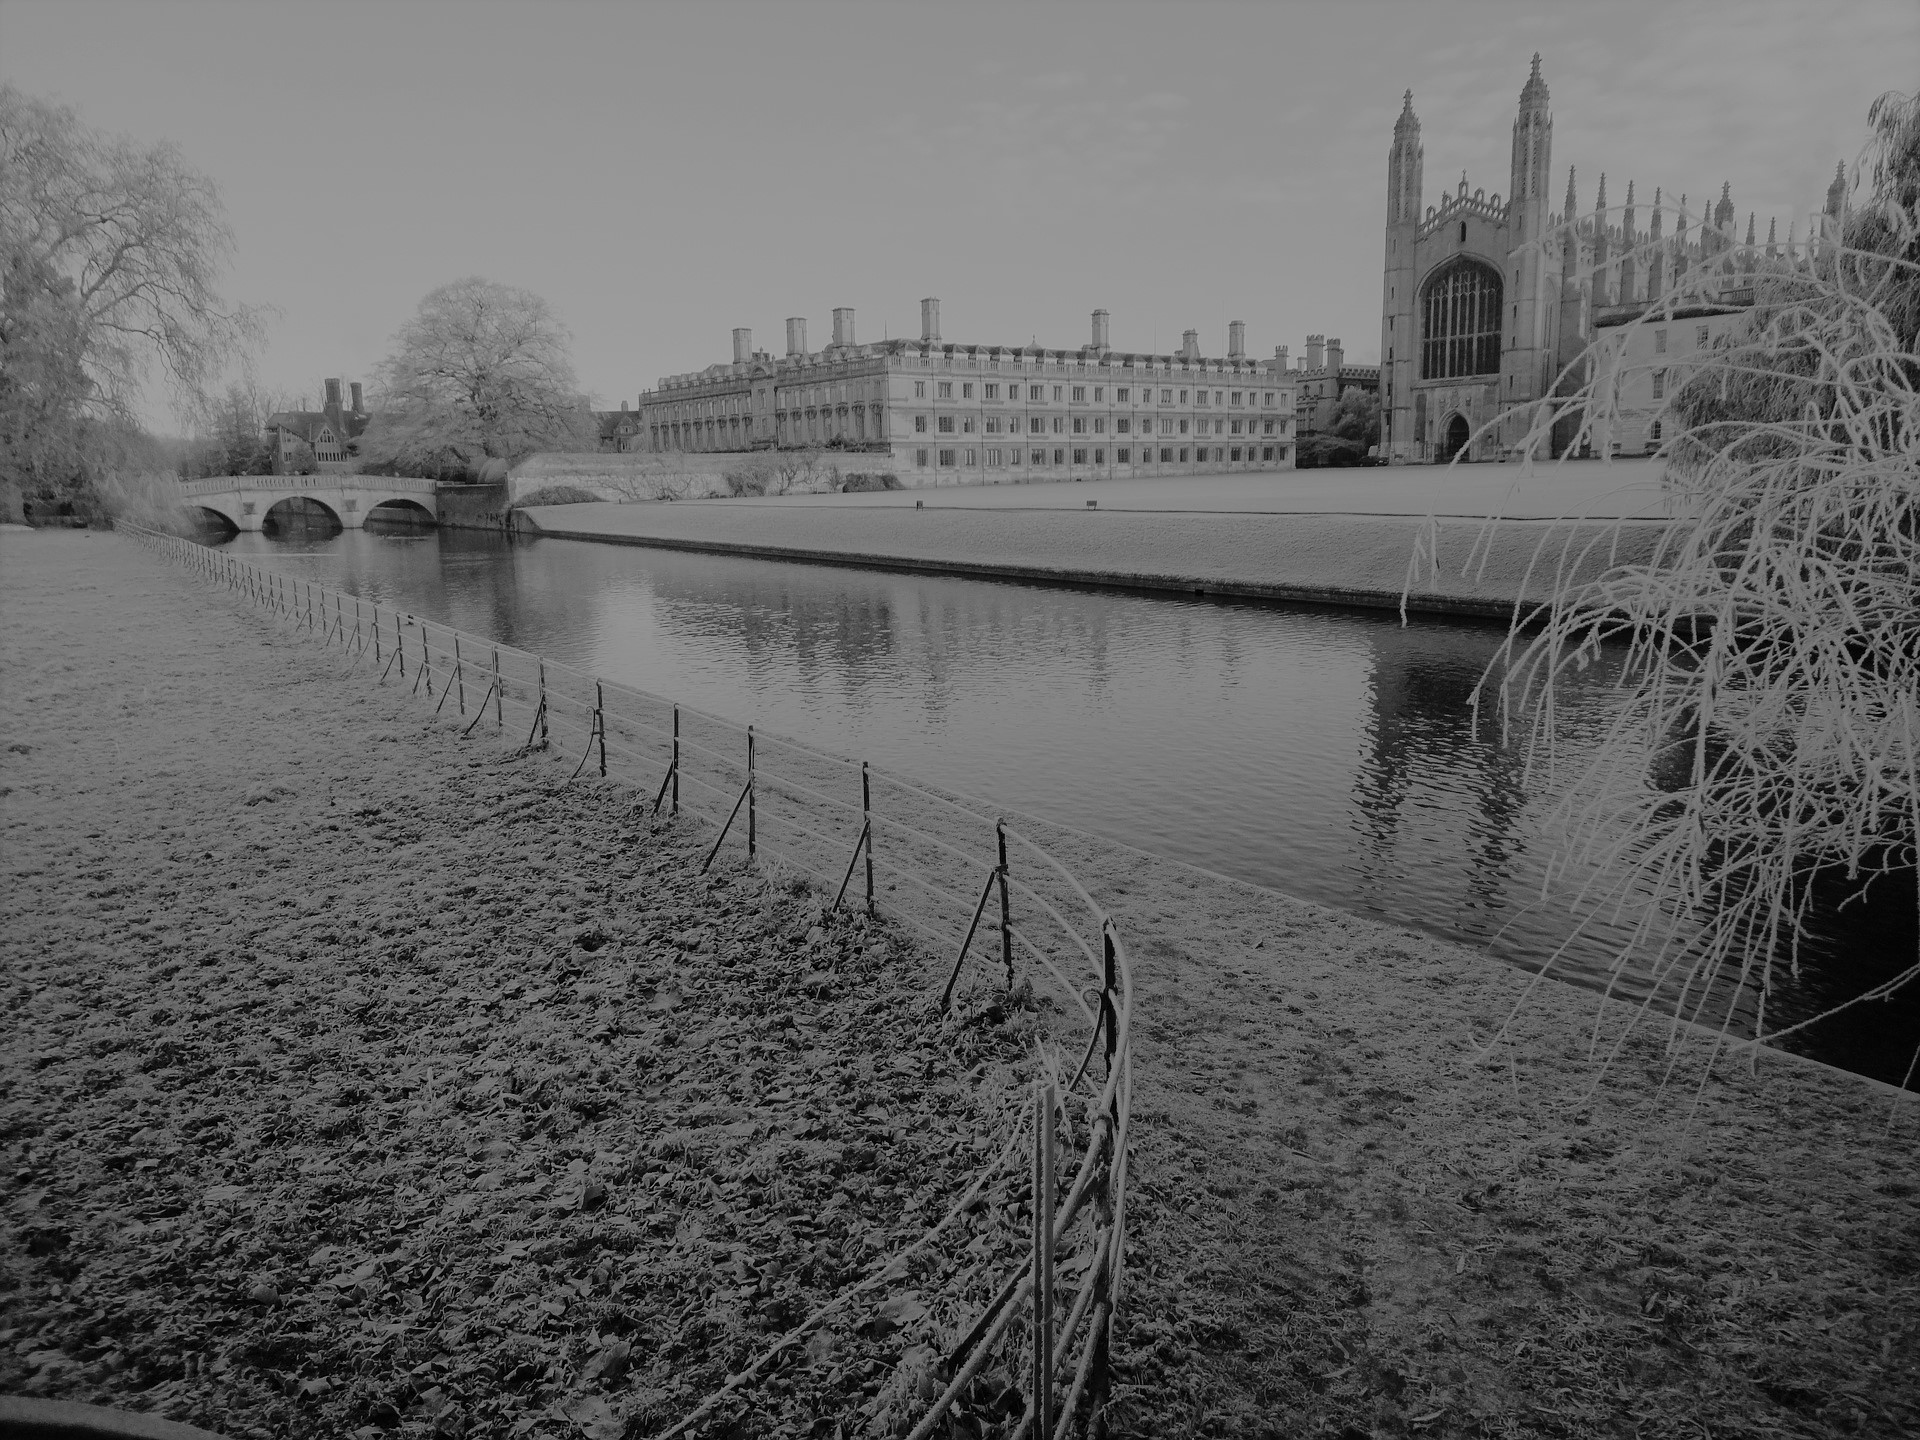 cambridge-bn.jpg